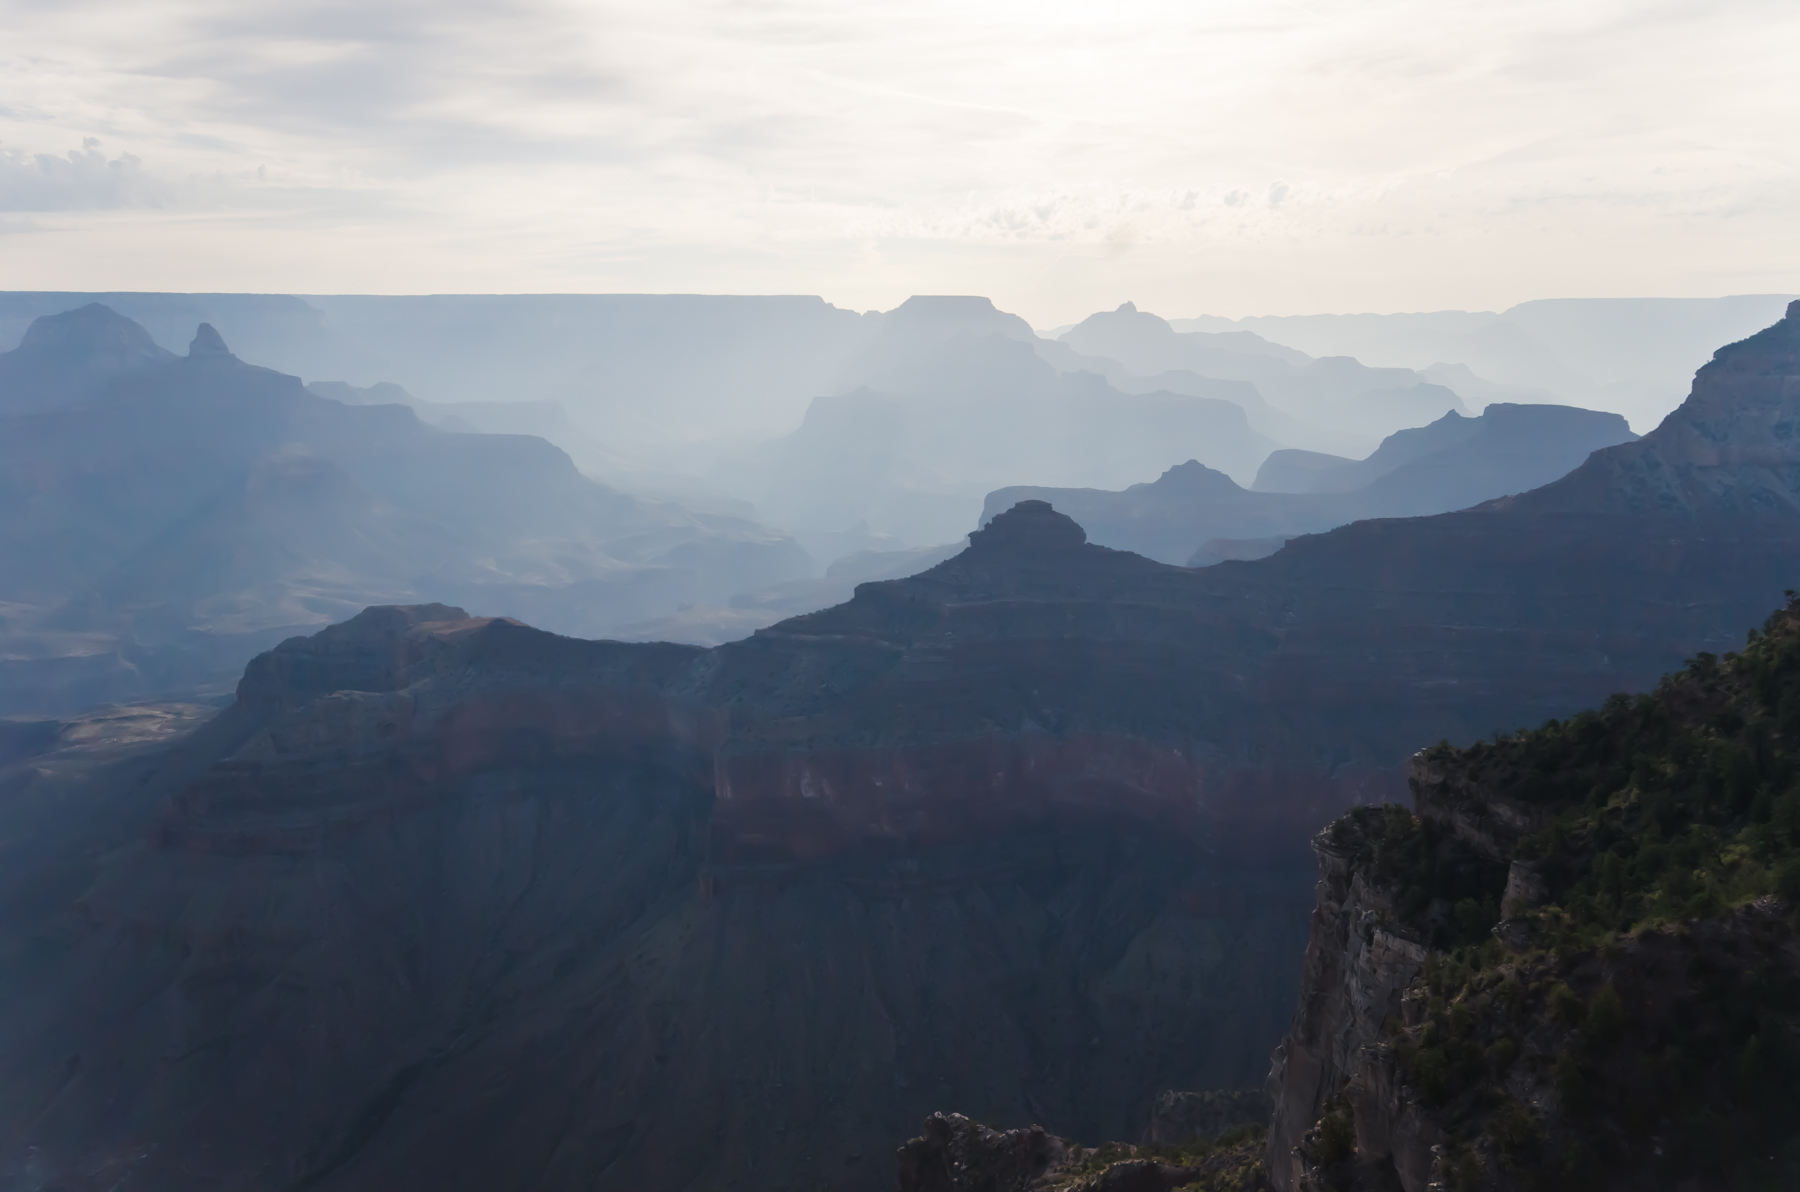 The magical Grand Canyon just after sunrise.